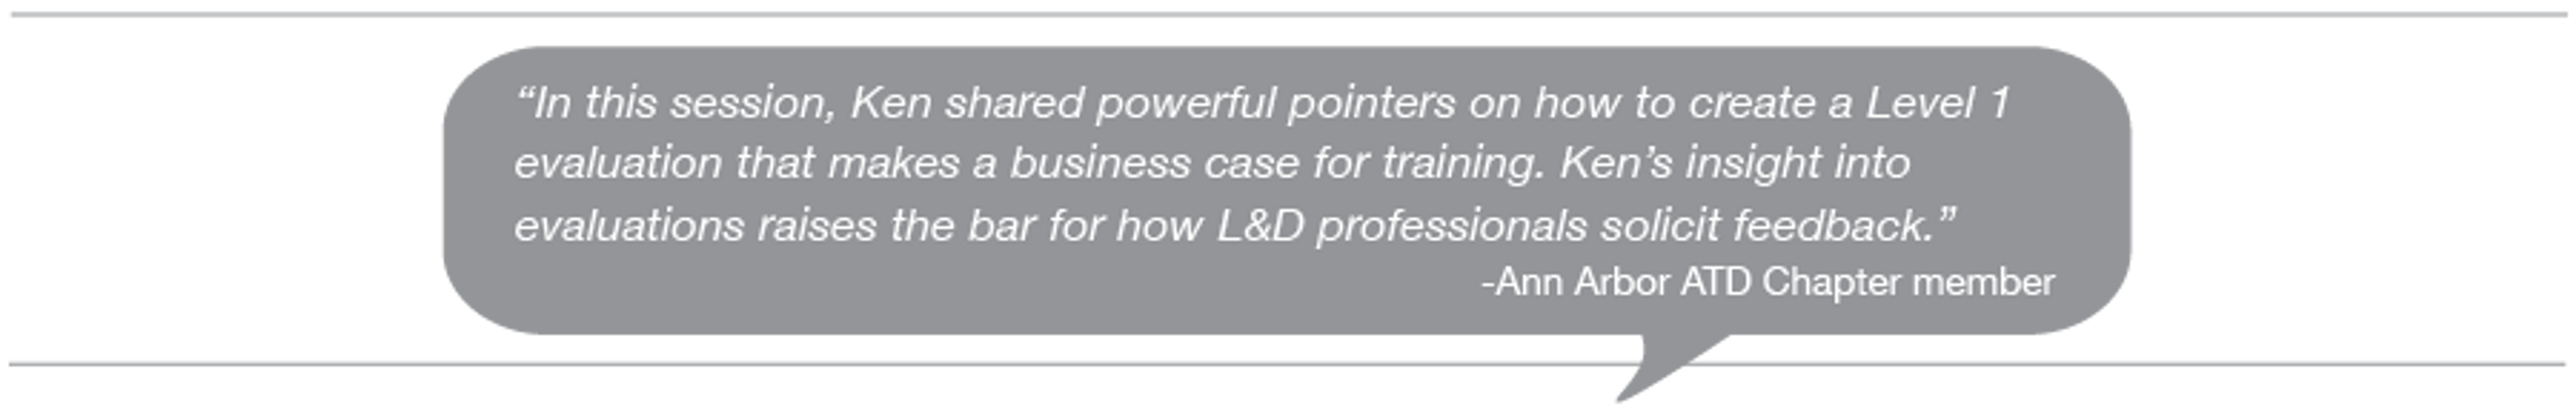 Testimonial: Ken's insight into evals raises the bar for how L&D professionals solicit feedback